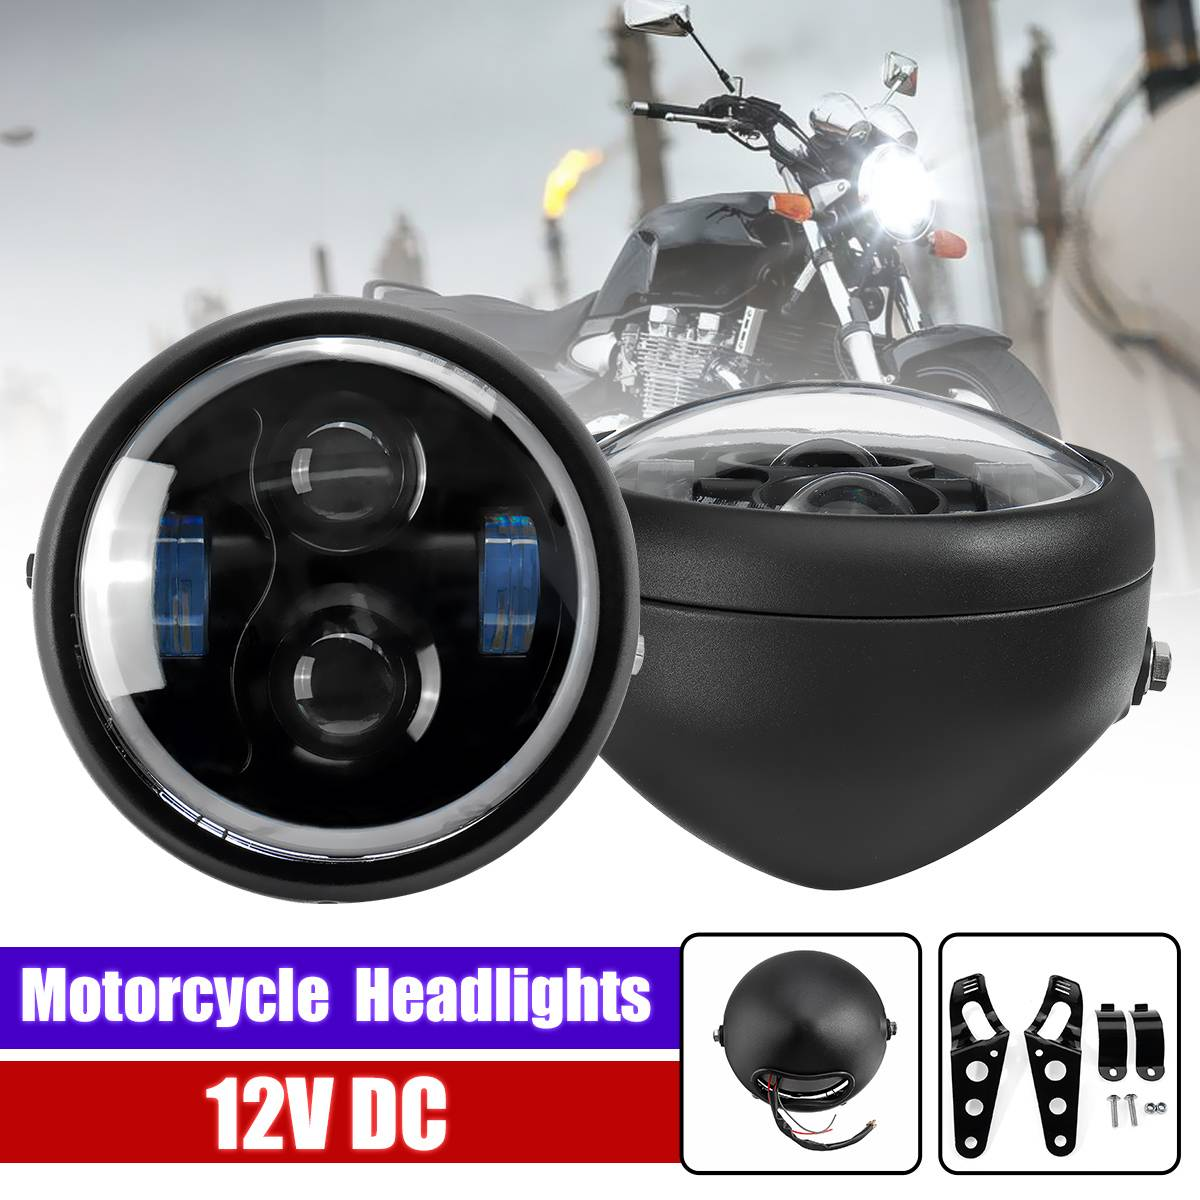 7 inch LED Projection Motorcycle Headlight Lamp With Brackets Ring Headlight Lamp Universal Front Light For auto Head Light